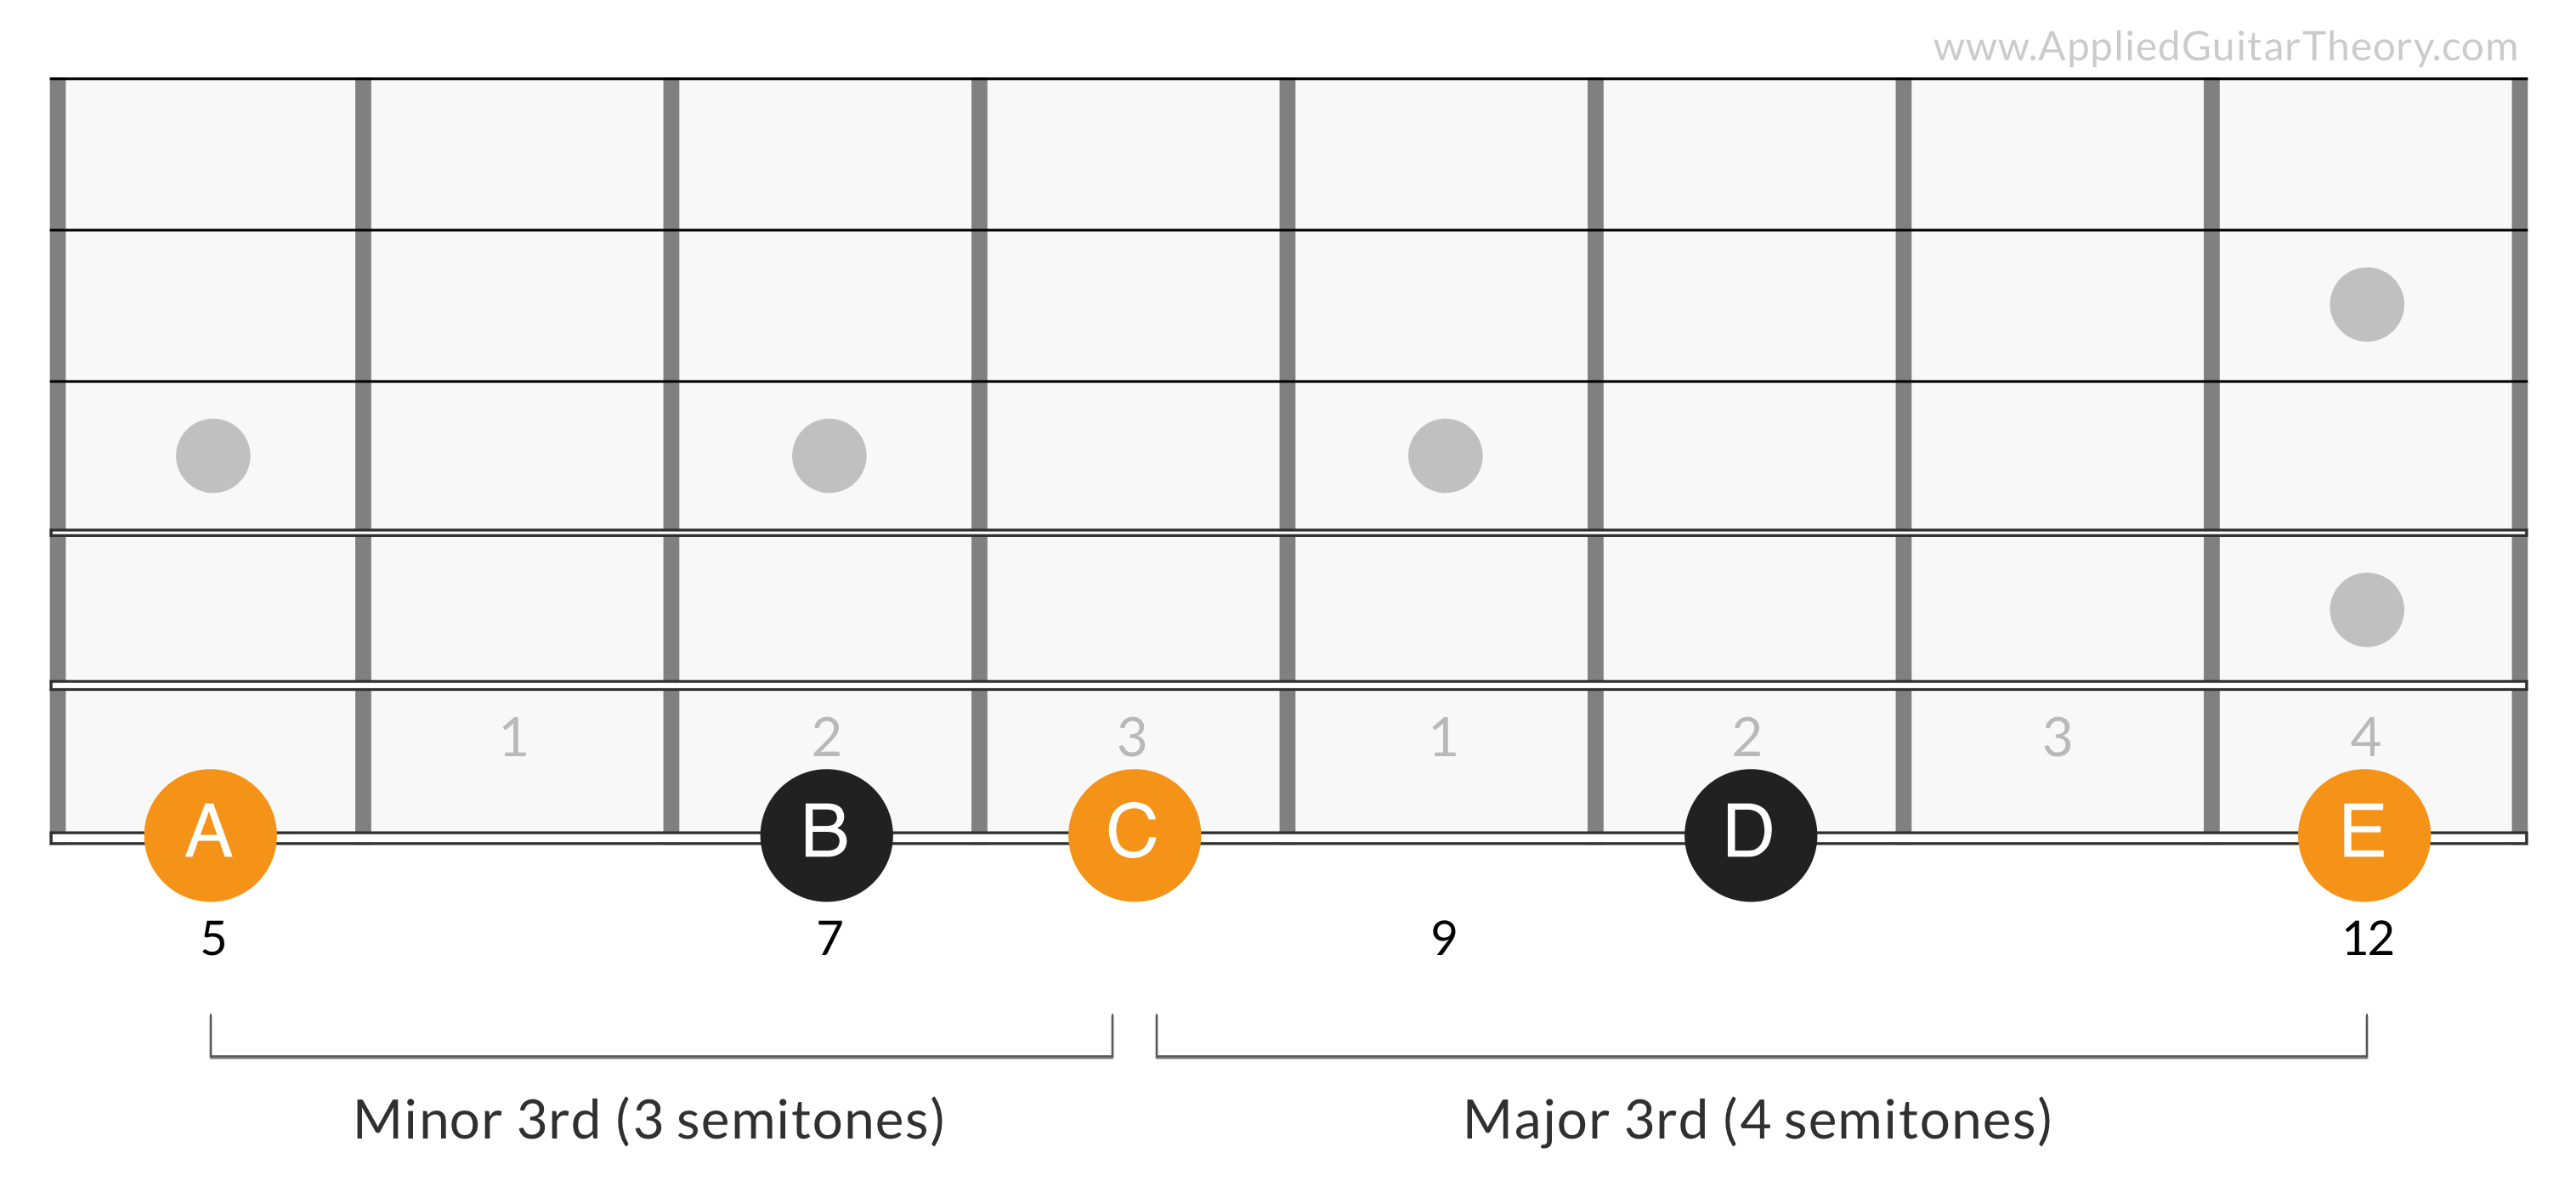 G Major Triad 2nd Degree - A C E